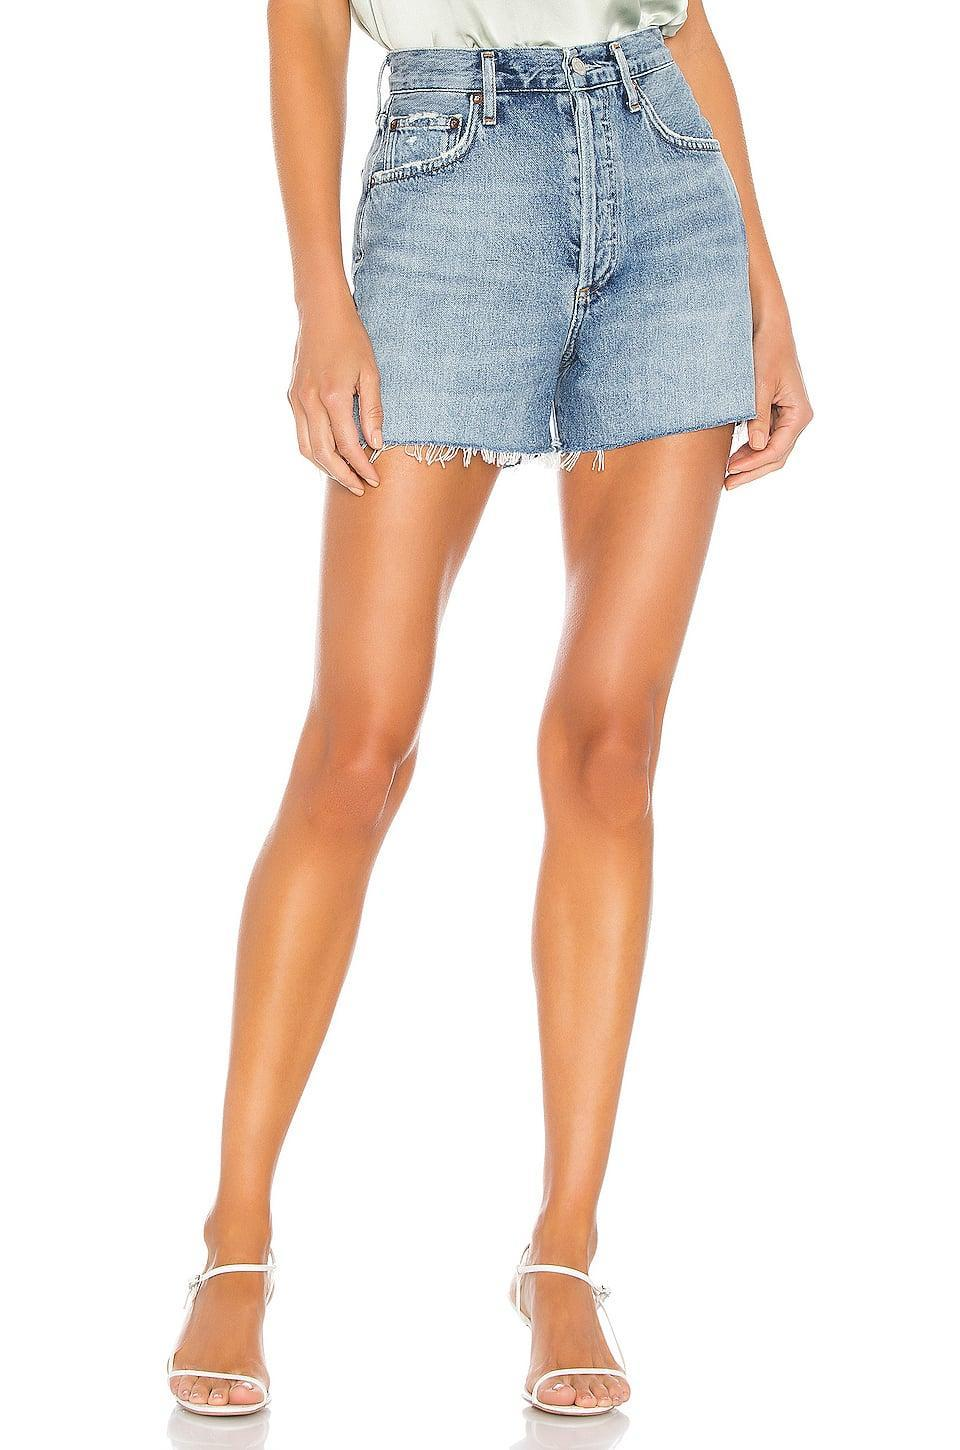 "<p>We love the slightly loose fit of these <a href=""https://www.popsugar.com/buy/Agolde-Dee-Super-High-Rise-Shorts-587738?p_name=Agolde%20Dee%20Super%20High%20Rise%20Shorts&retailer=revolve.com&pid=587738&price=128&evar1=fab%3Aus&evar9=45988379&evar98=https%3A%2F%2Fwww.popsugar.com%2Ffashion%2Fphoto-gallery%2F45988379%2Fimage%2F47603875%2FAgolde-Dee-Super-High-Rise-Shorts&list1=shopping%2Cdenim%2Cshorts%2Csummer%2Cdenim%20shorts%2Csummer%20fashion&prop13=mobile&pdata=1"" class=""link rapid-noclick-resp"" rel=""nofollow noopener"" target=""_blank"" data-ylk=""slk:Agolde Dee Super High Rise Shorts"">Agolde Dee Super High Rise Shorts</a> ($128).</p>"